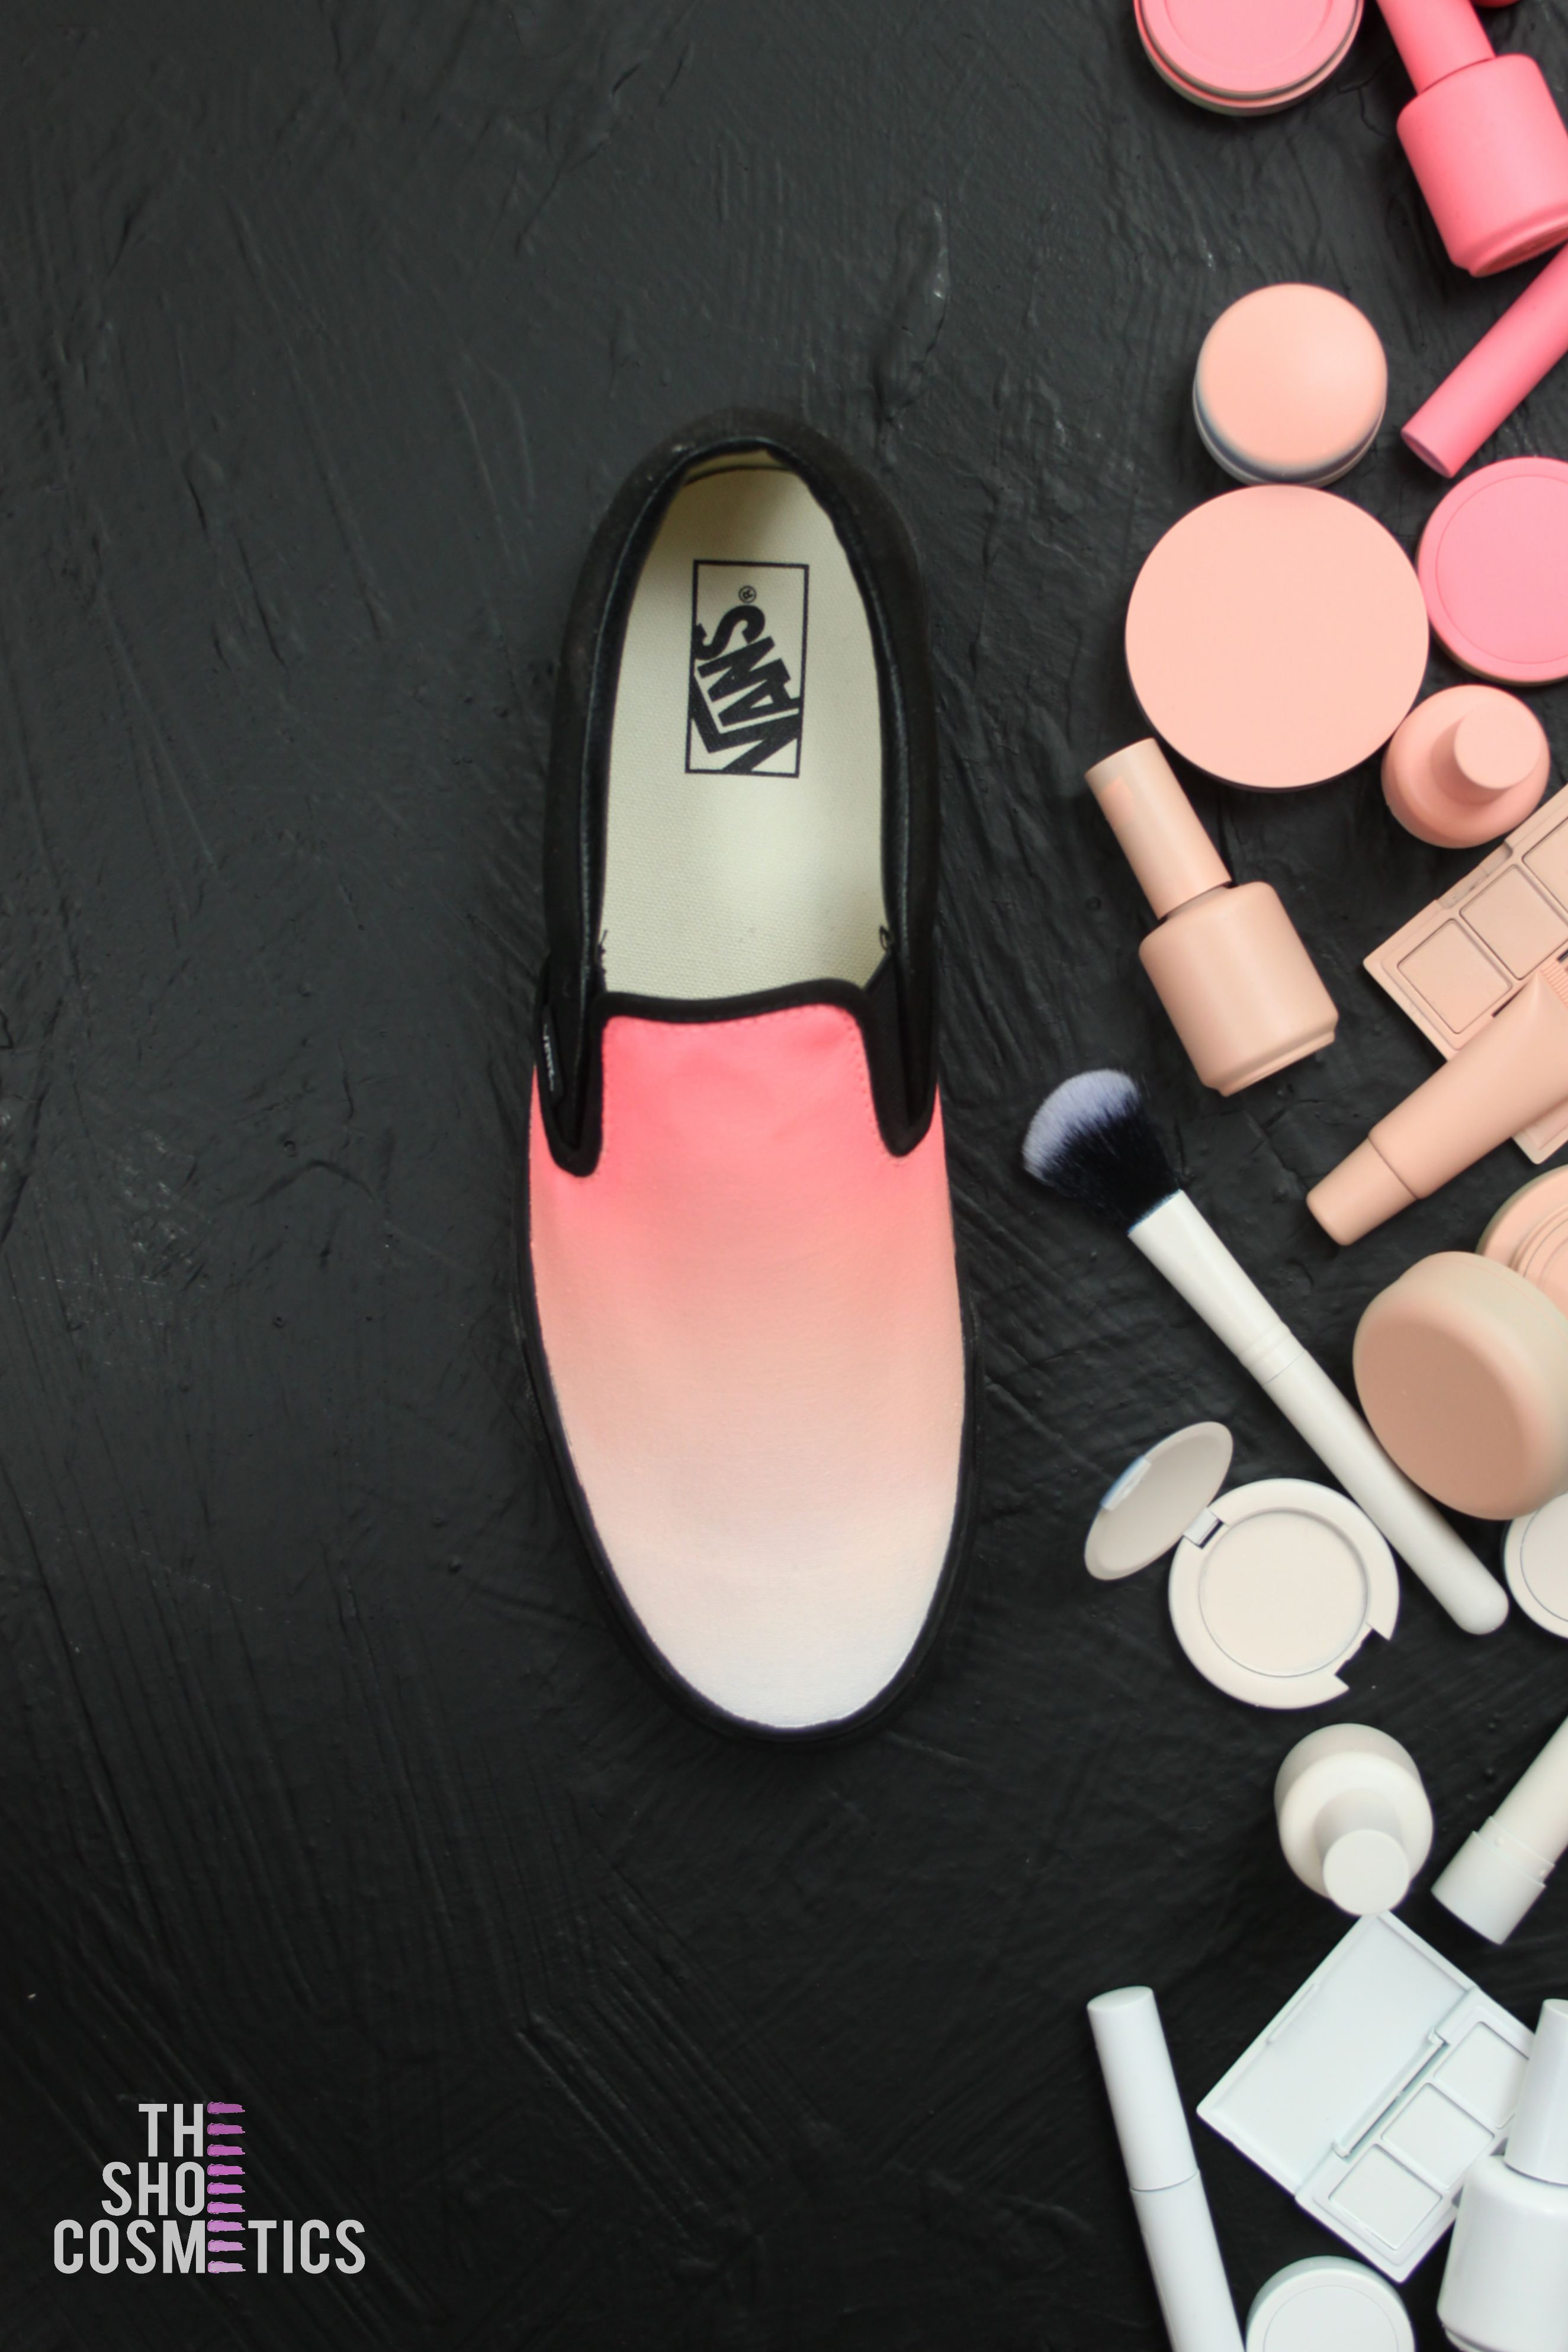 ebc4eee38d9c29 Introducing our pink and peach ombre custom vans slip on shoes. Maybe  looking for a new pair of black vans or pink vans shoes  Explore these Vans  slip on ...